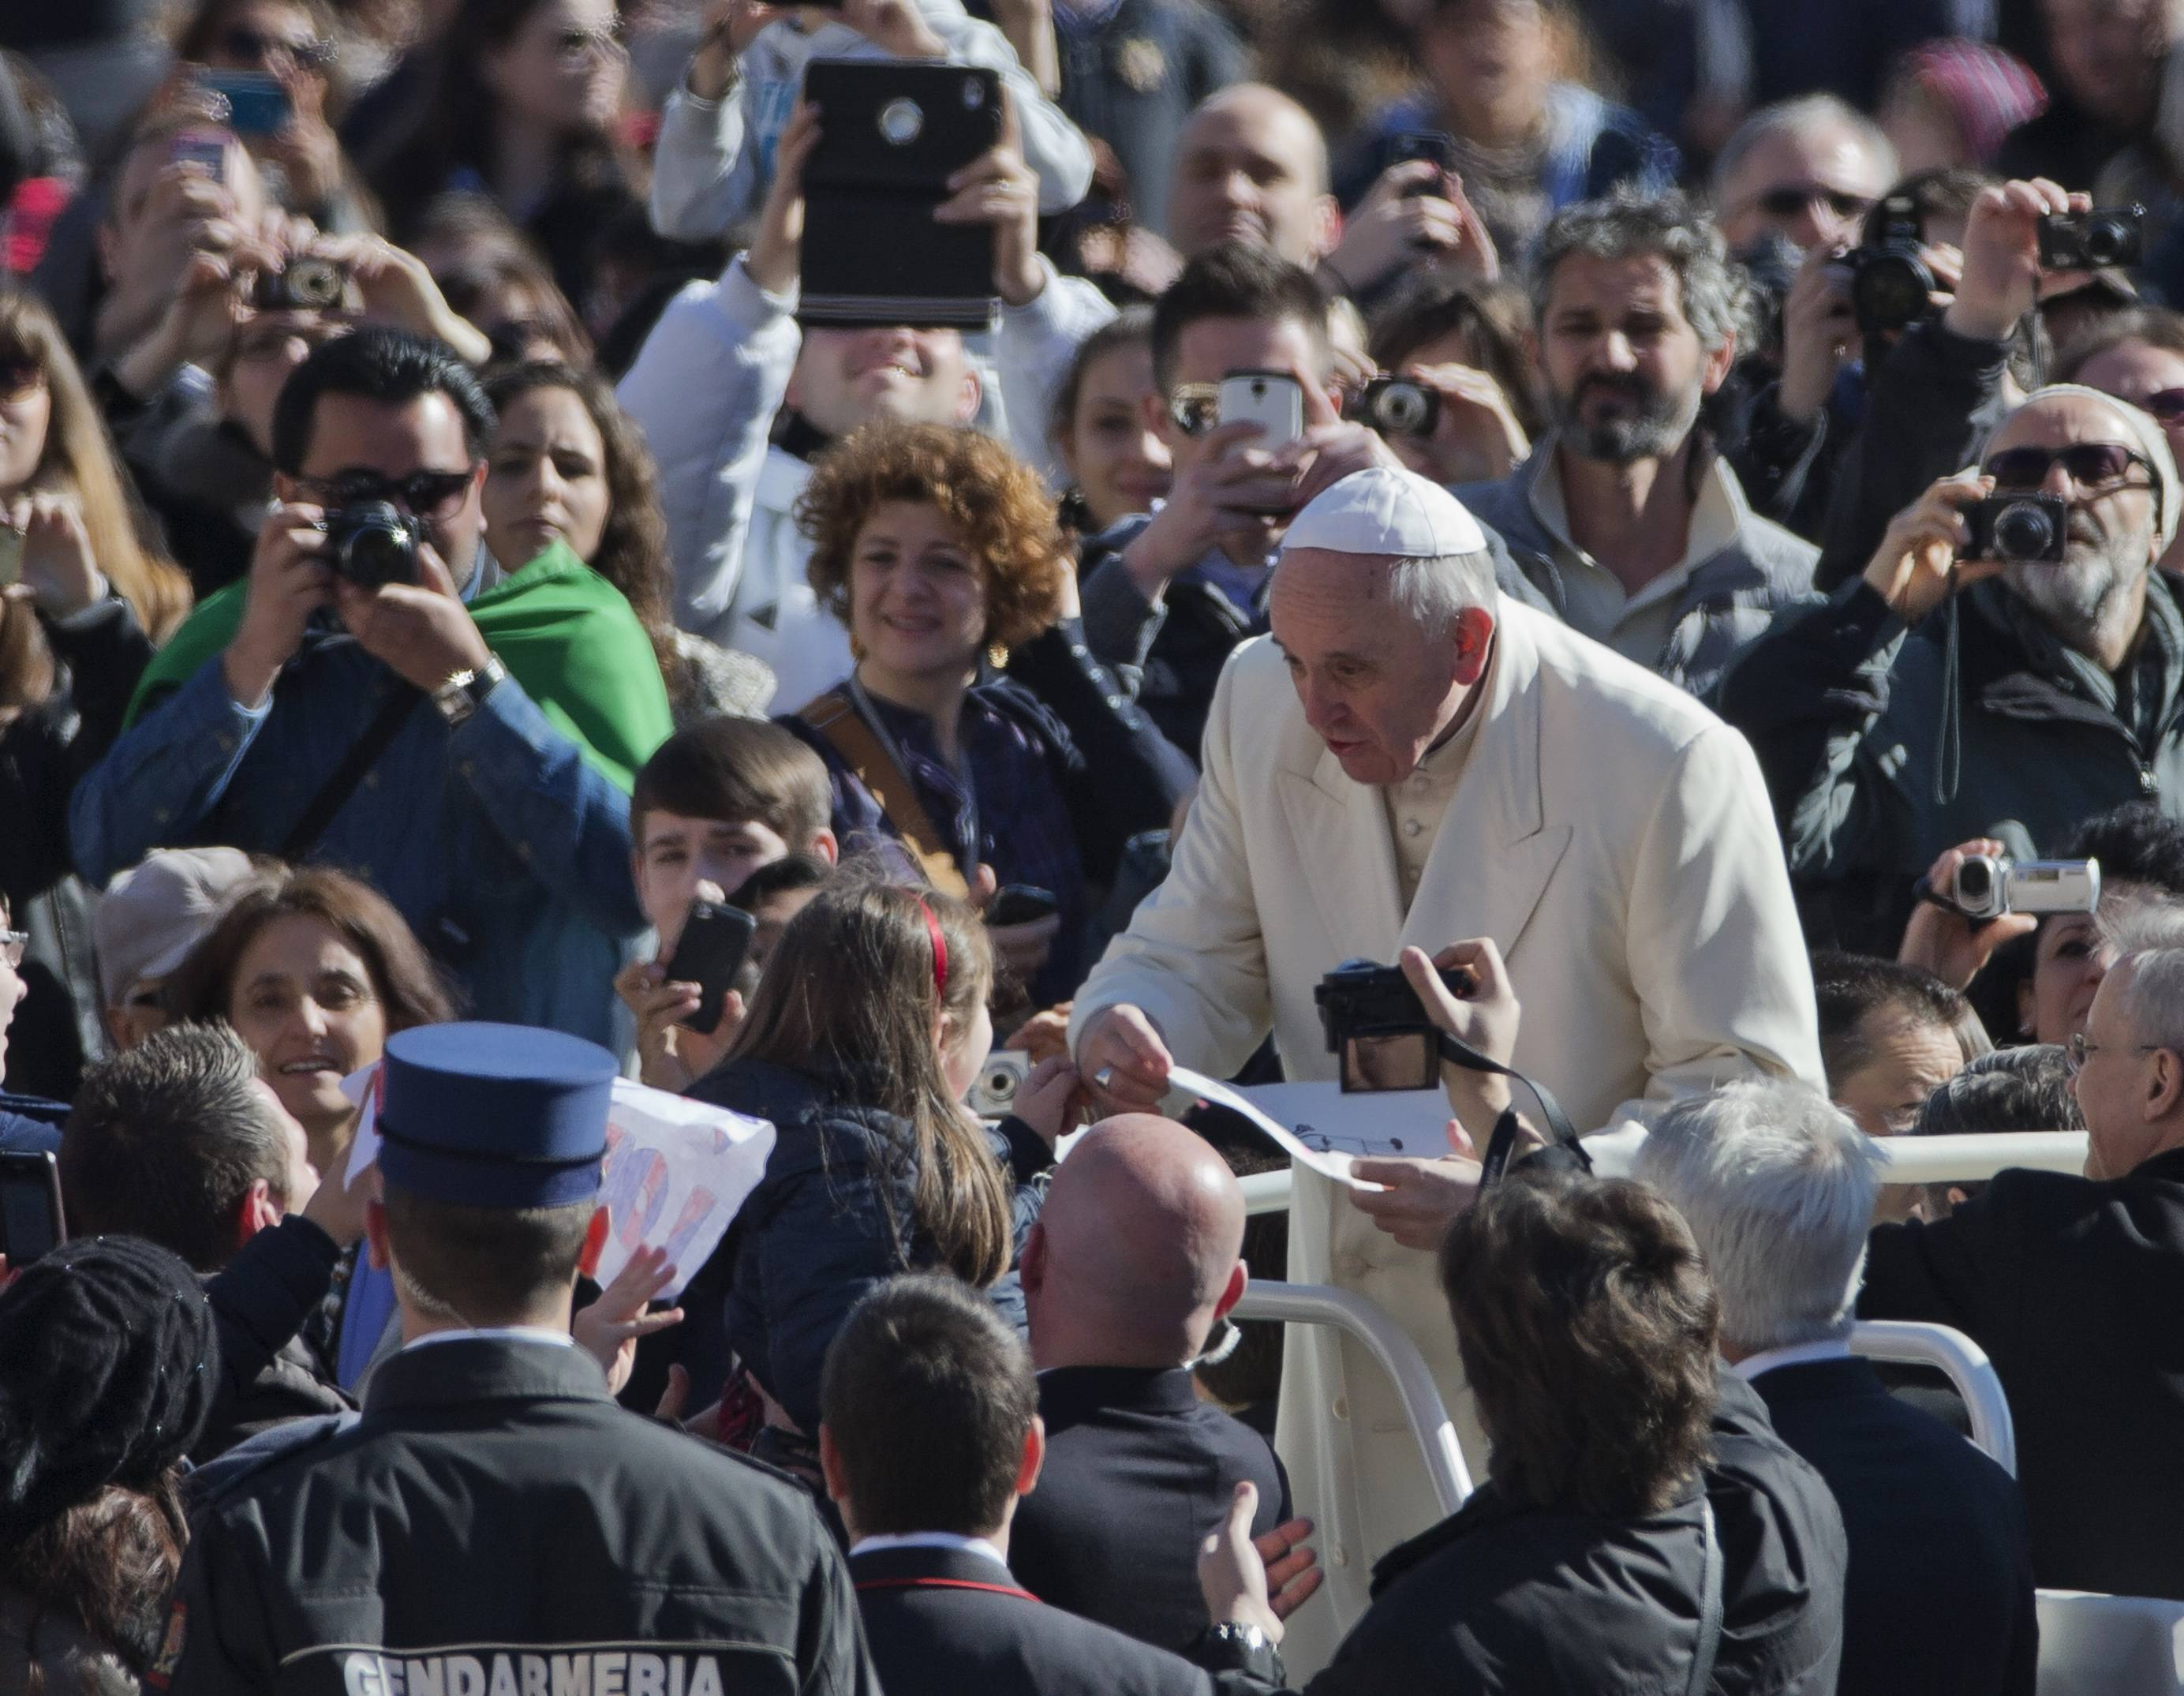 "In this March 5, photo, Pope Francis is presented by a girl with a drawing while touring St. Peter's Square at the Vatican prior to the start of his weekly general audience. Pope Francis insists his weekend pilgrimage to the Middle East is a ""strictly religious"" commemoration of a key turning point in Catholic-Orthodox relations. But the three-day mission is the most delicate of his papacy and will test his diplomatic chops as he negotiates Israeli-Palestinian tensions and fallout from Syria's civil war."